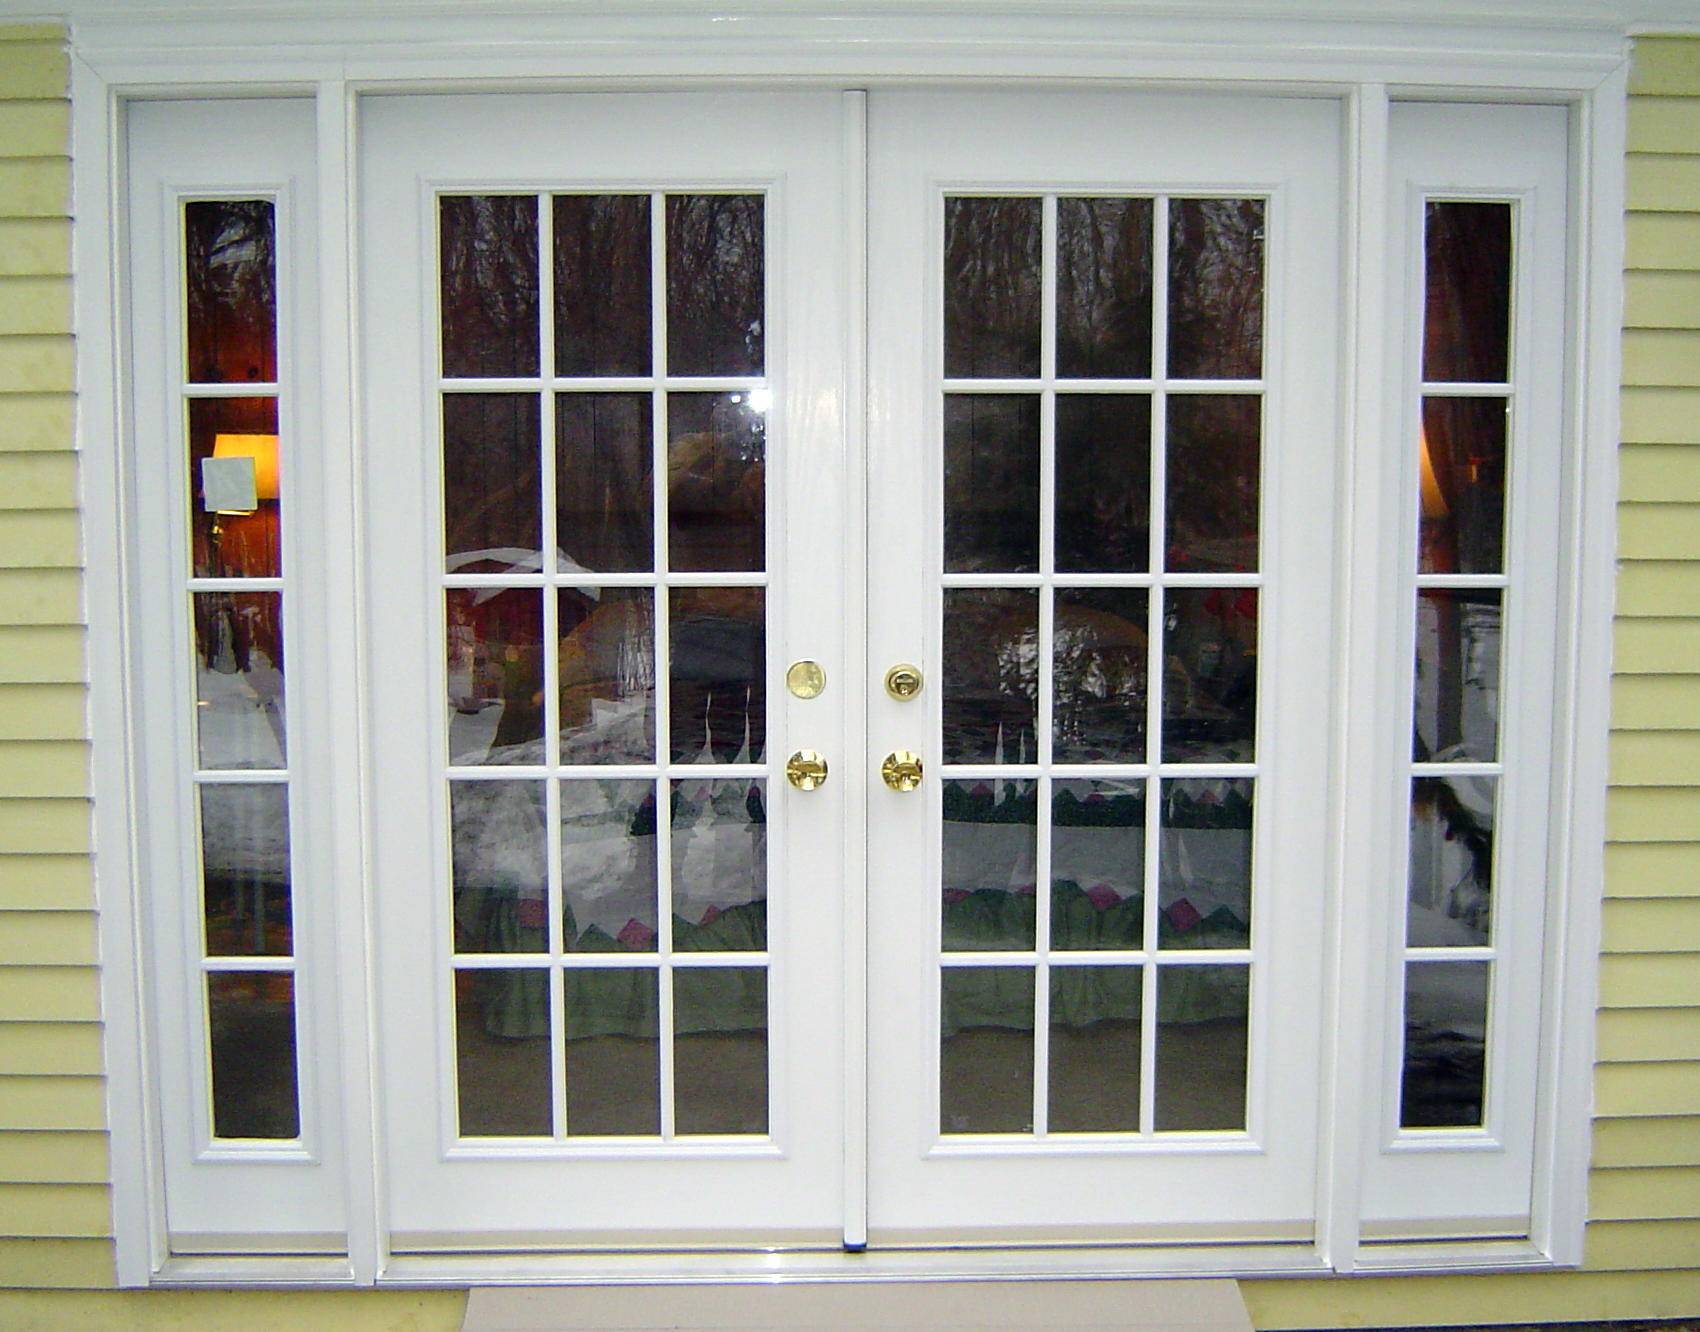 1332 #643C2D Pin Windows And Doors On Pinterest pic Window And Doors 45311700